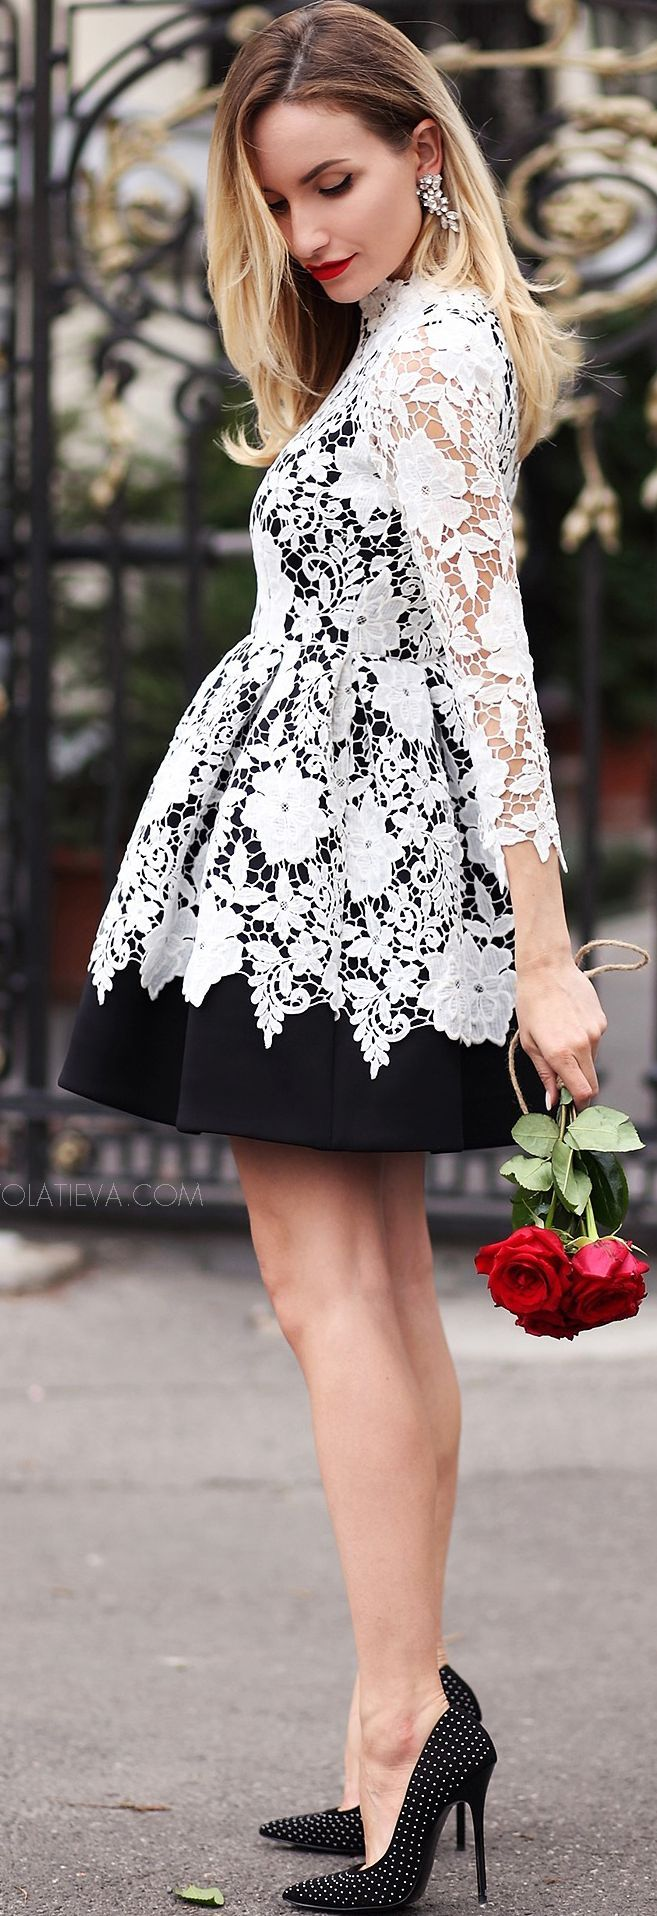 Postolatieva Black And White Romantic Skater Dress Fall Inspo